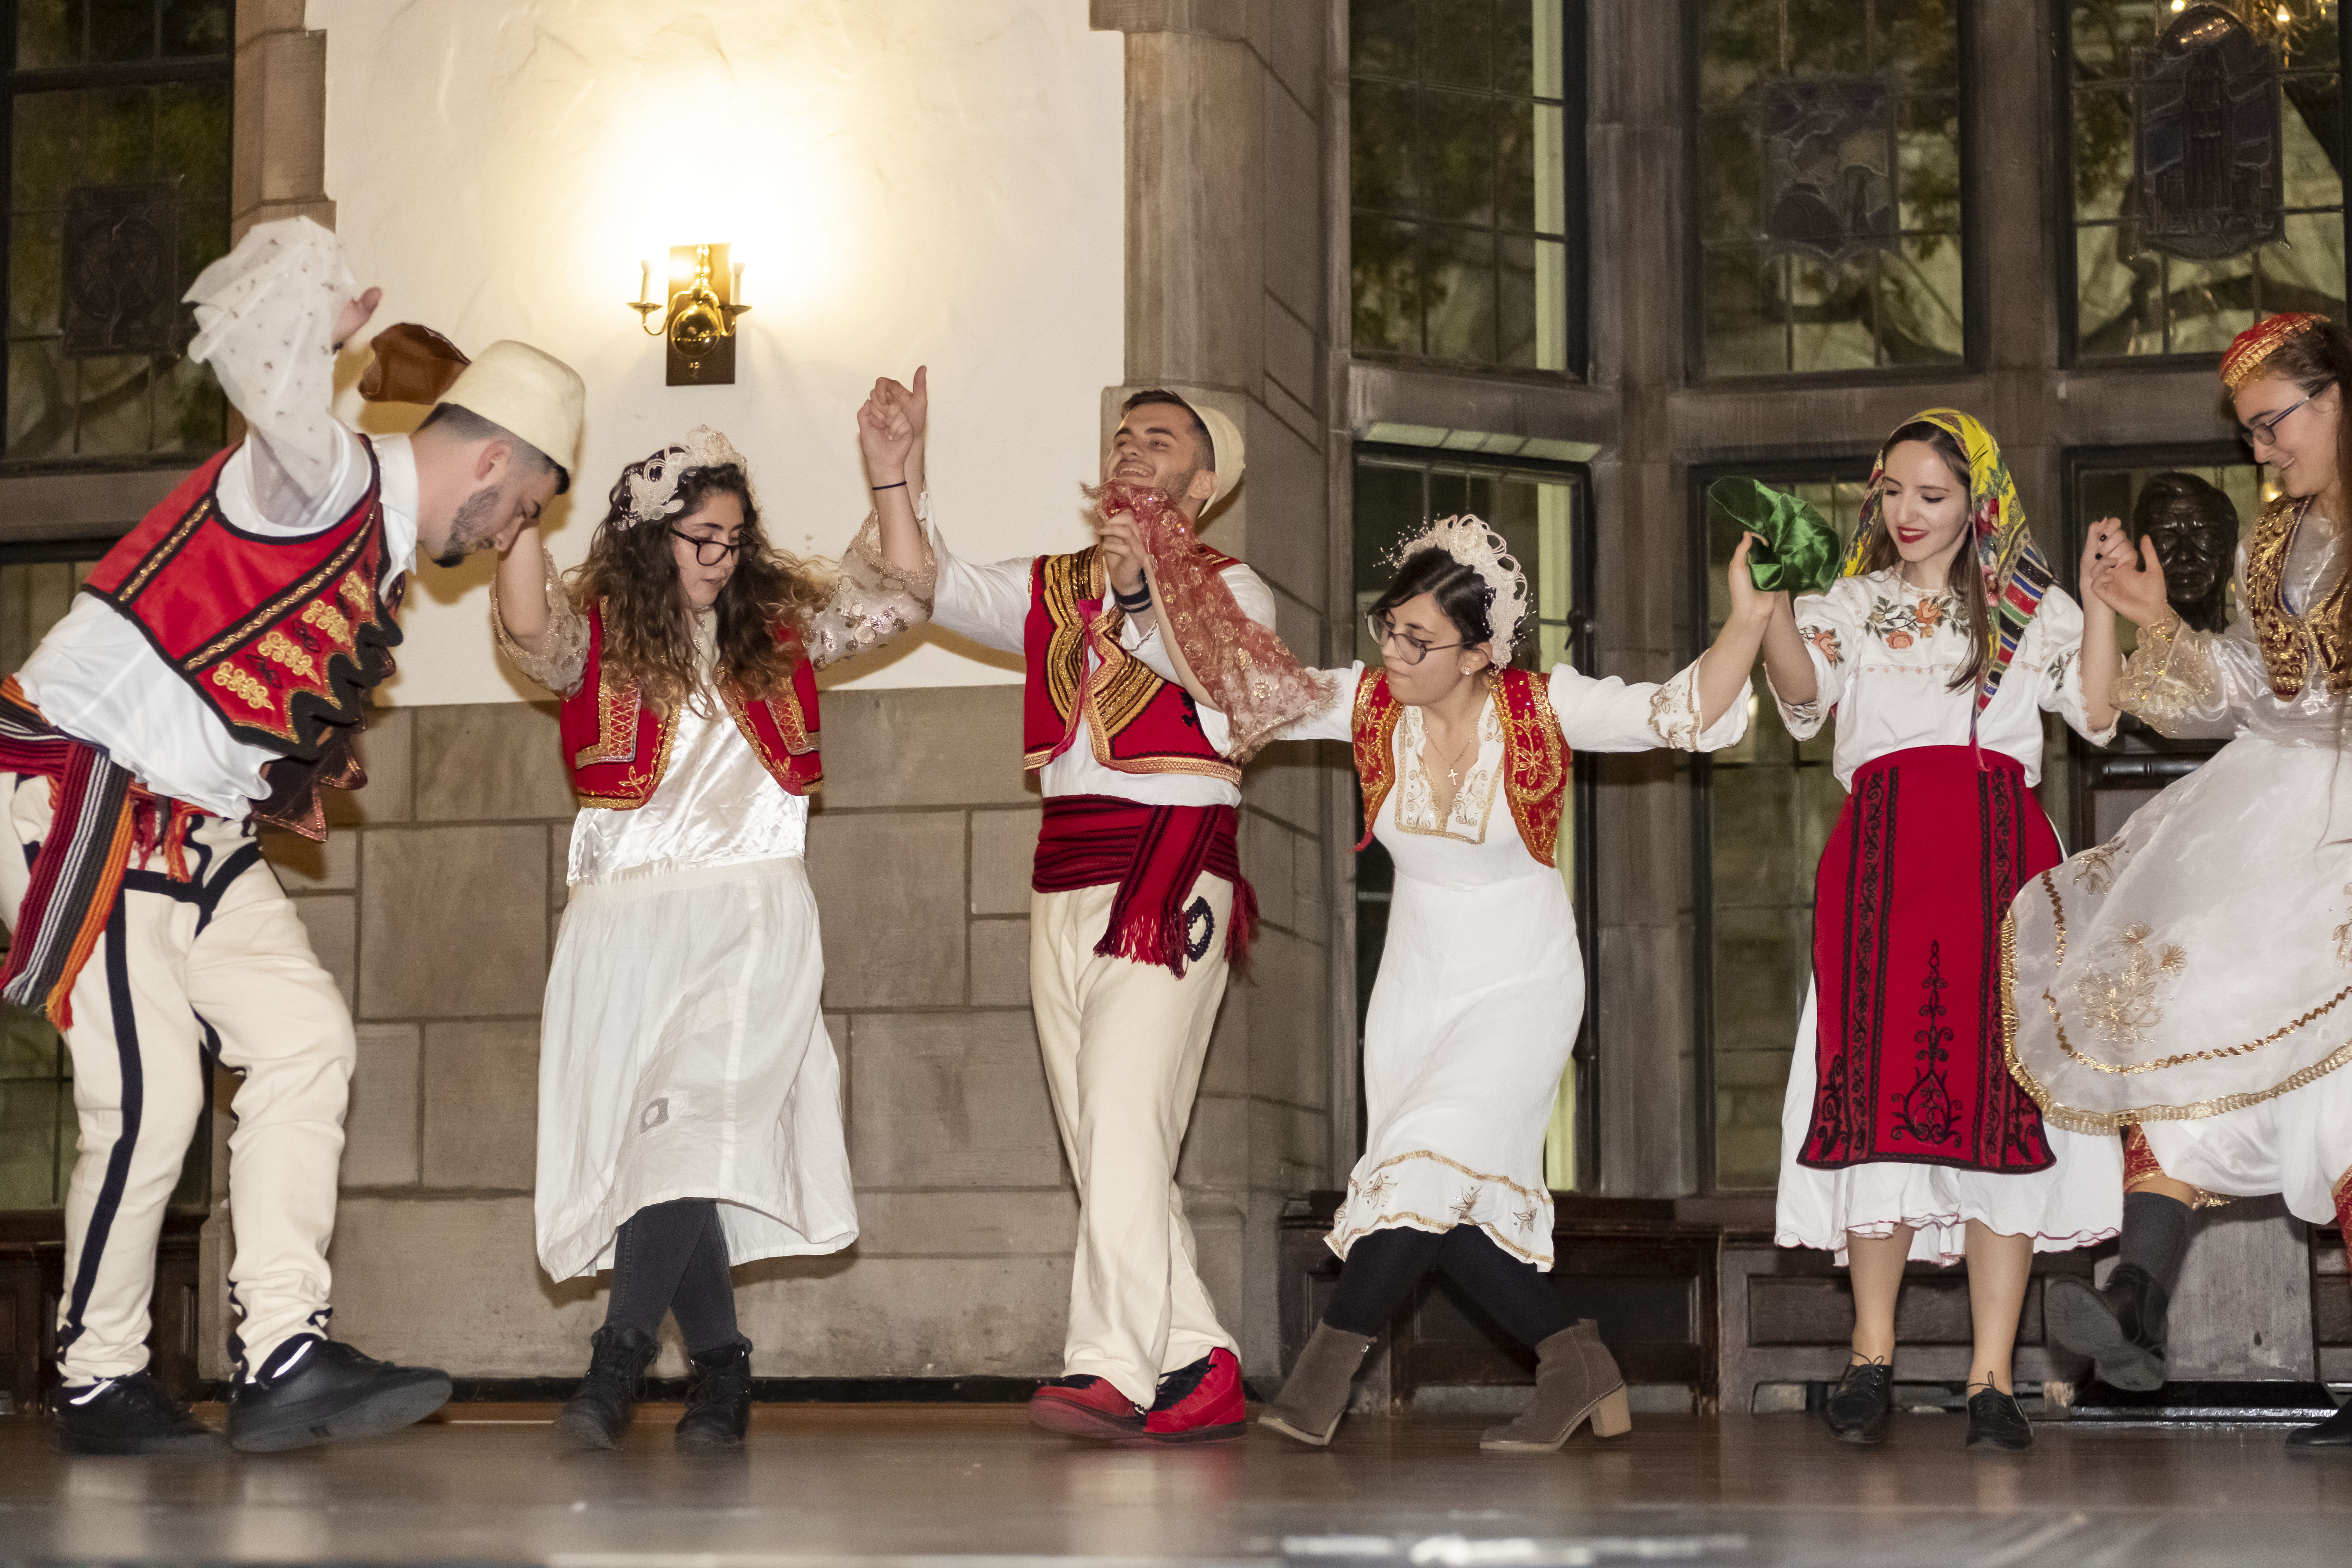 Albanian students performing dance on stage.